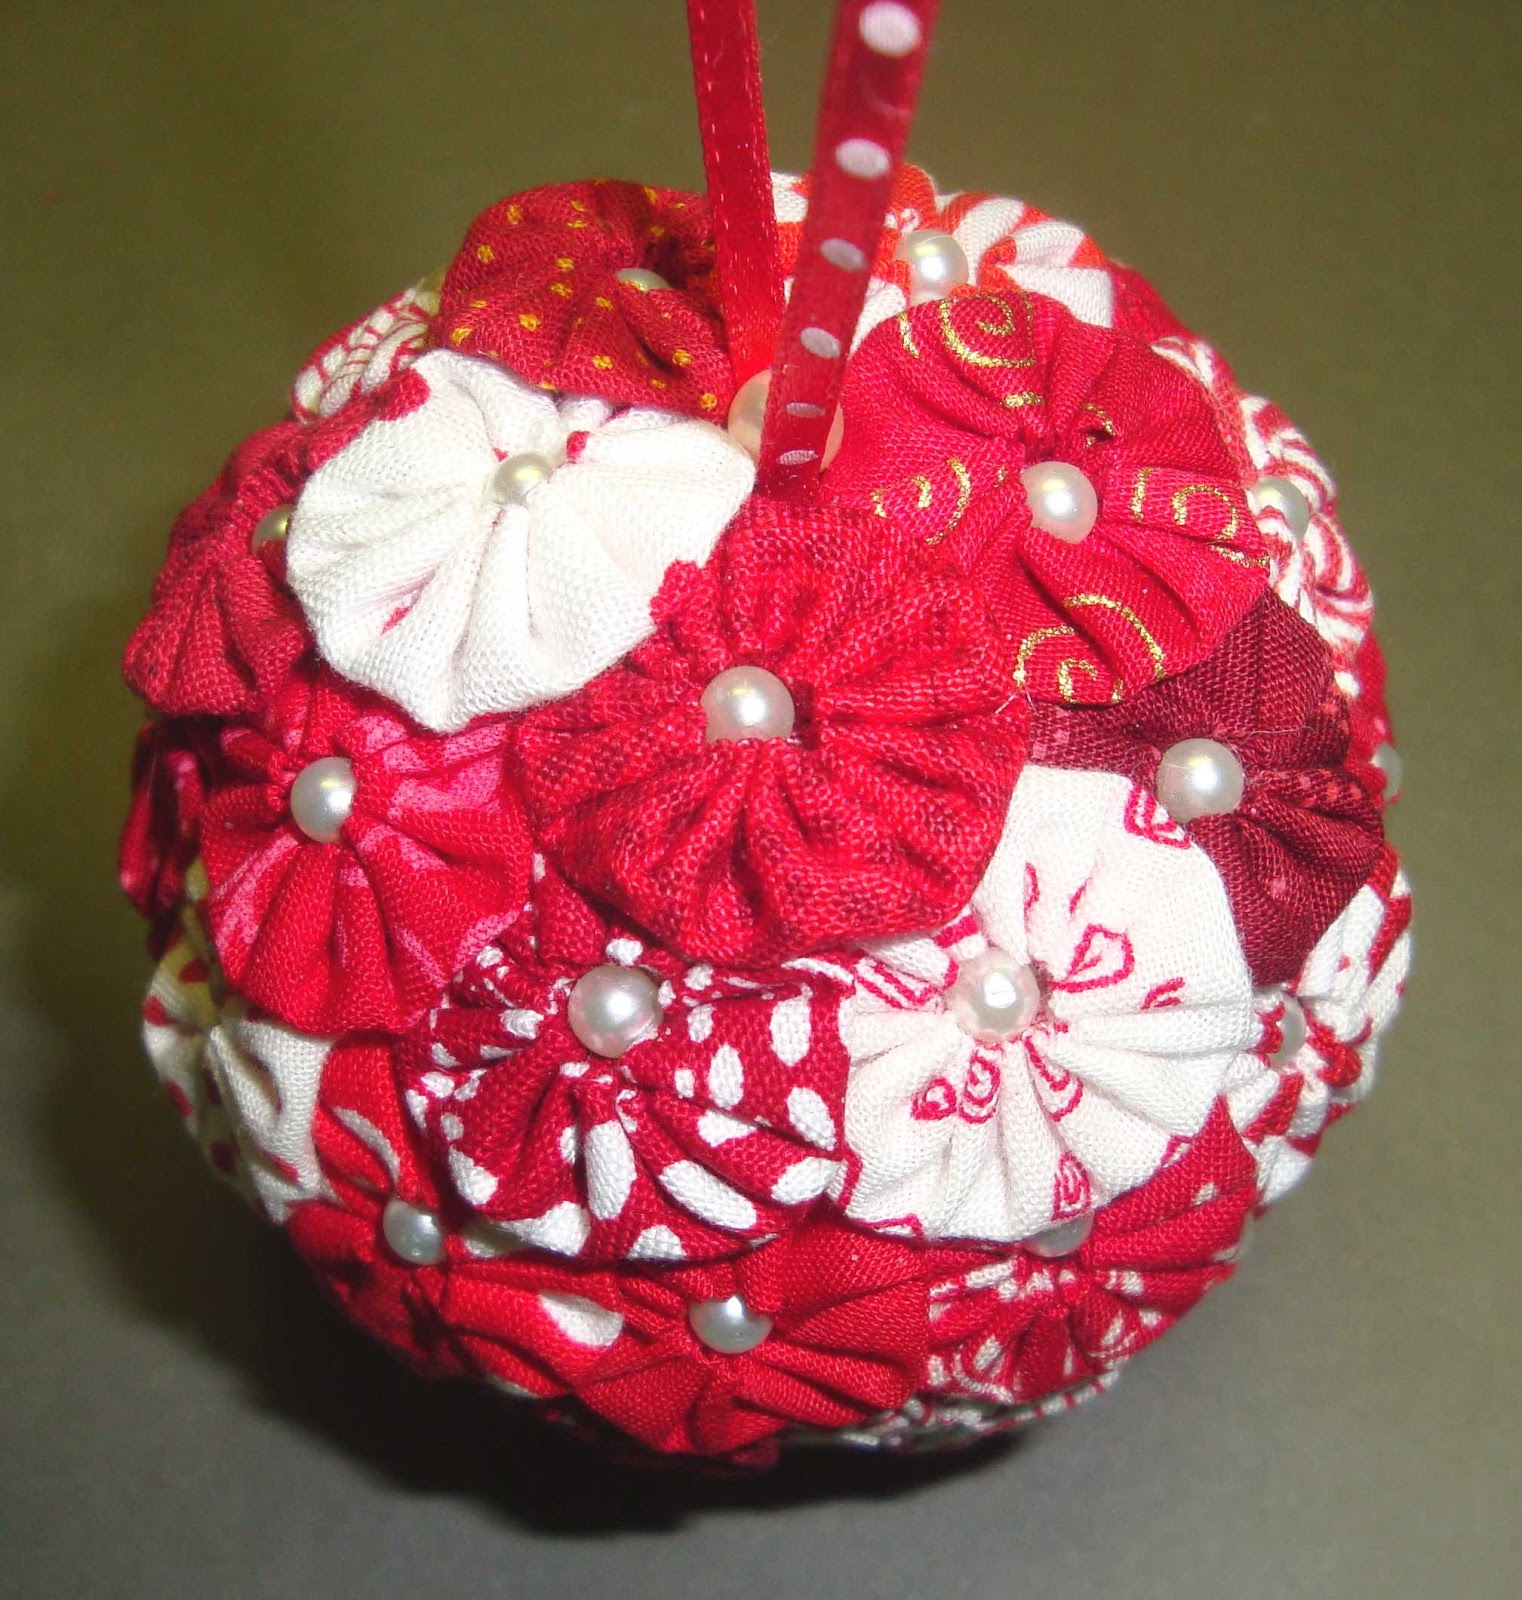 FABRIC THERAPY: Ornament Exchange Offering